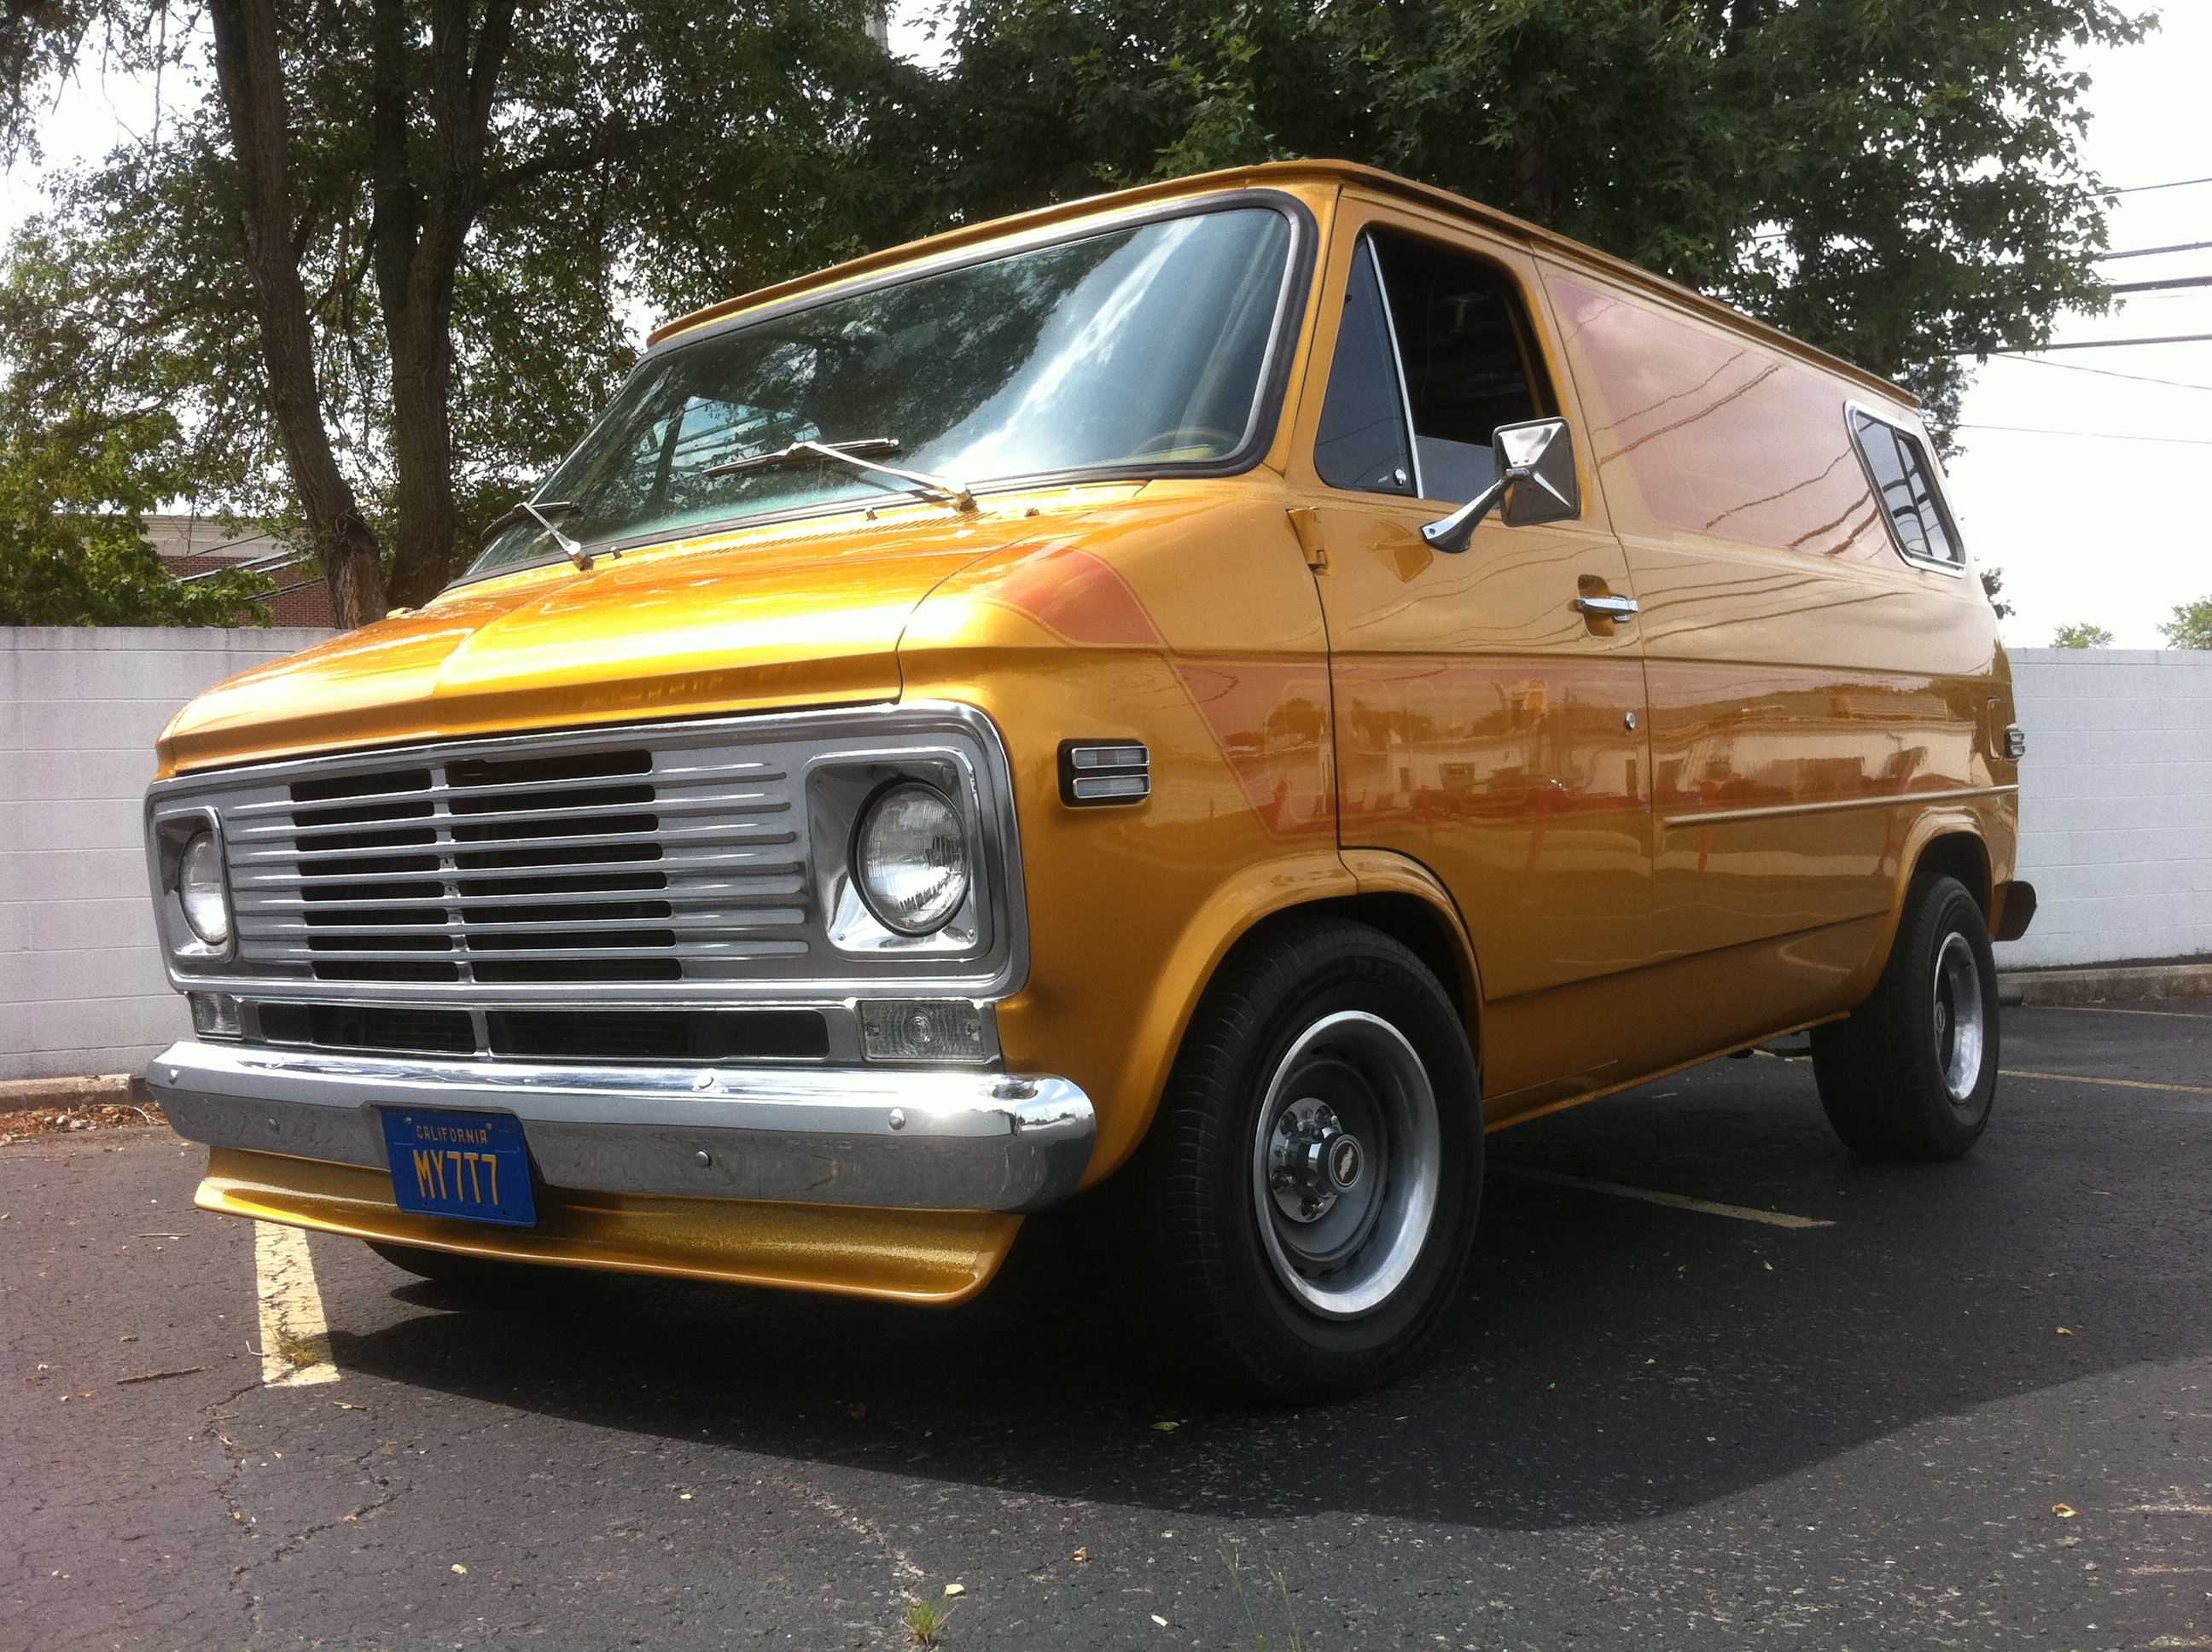 strifeofbrian 1977 Chevrolet Van Specs, Photos, Modification Info at